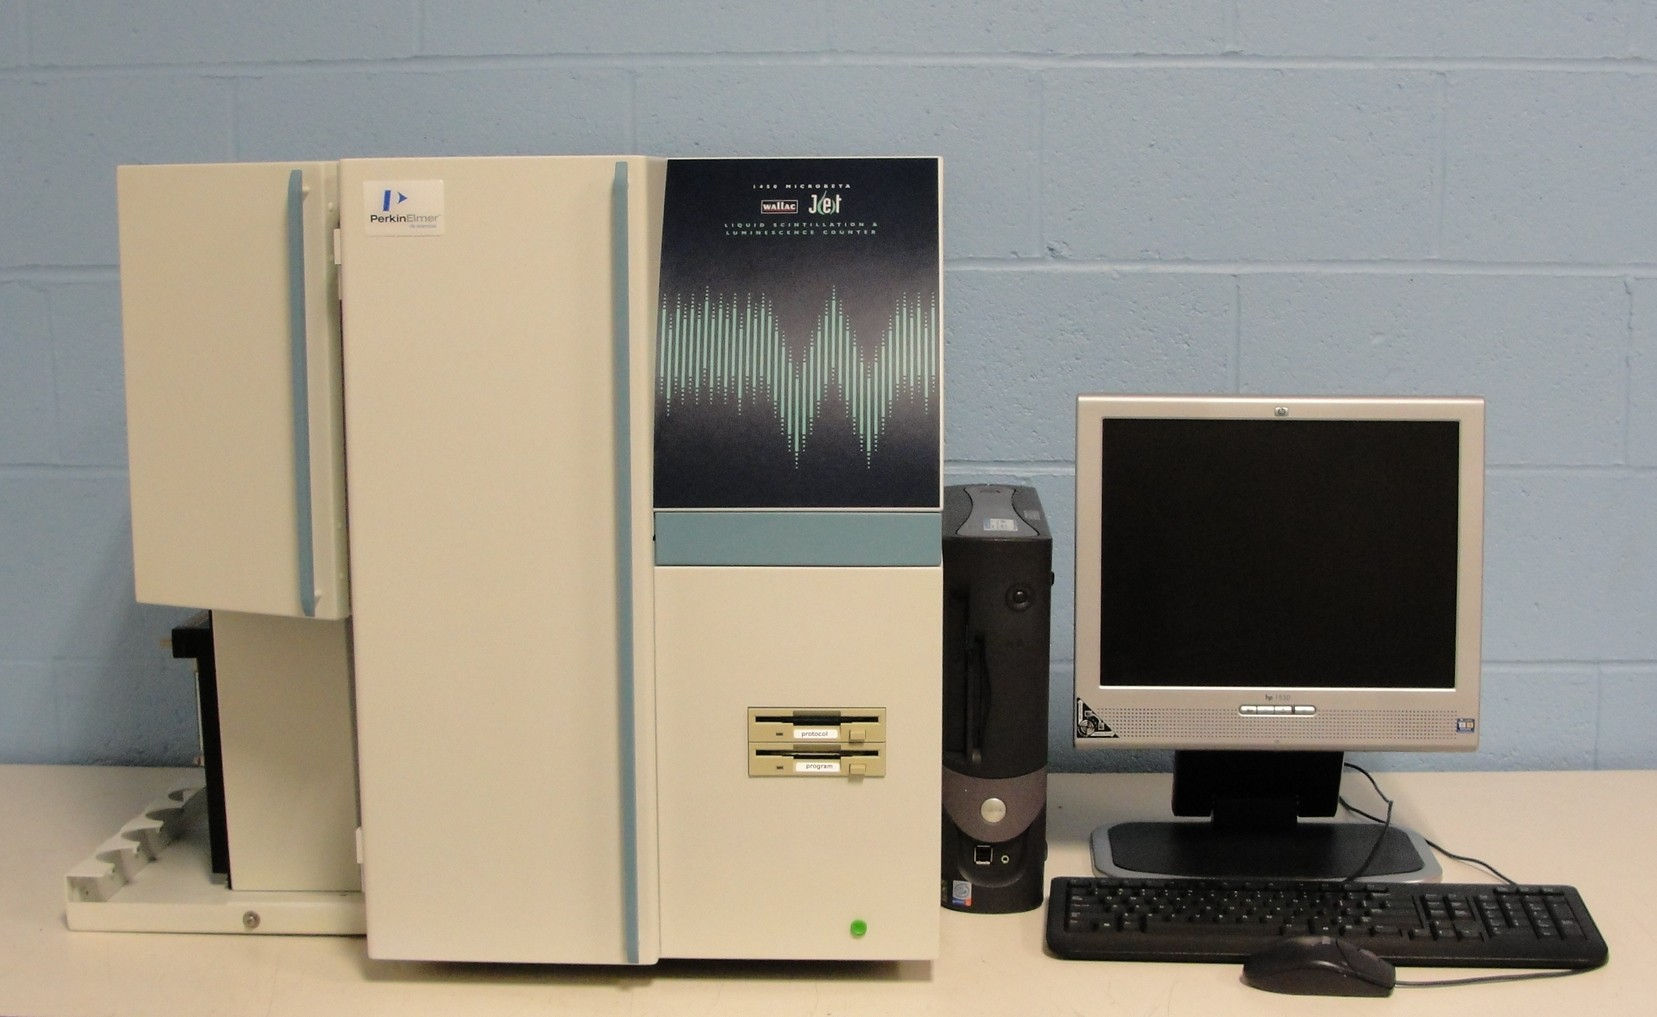 PerkinElmer/Wallac 1450-021 Trilux MicroBeta Jet Liquid Scintillation and Luminescence Counter Image